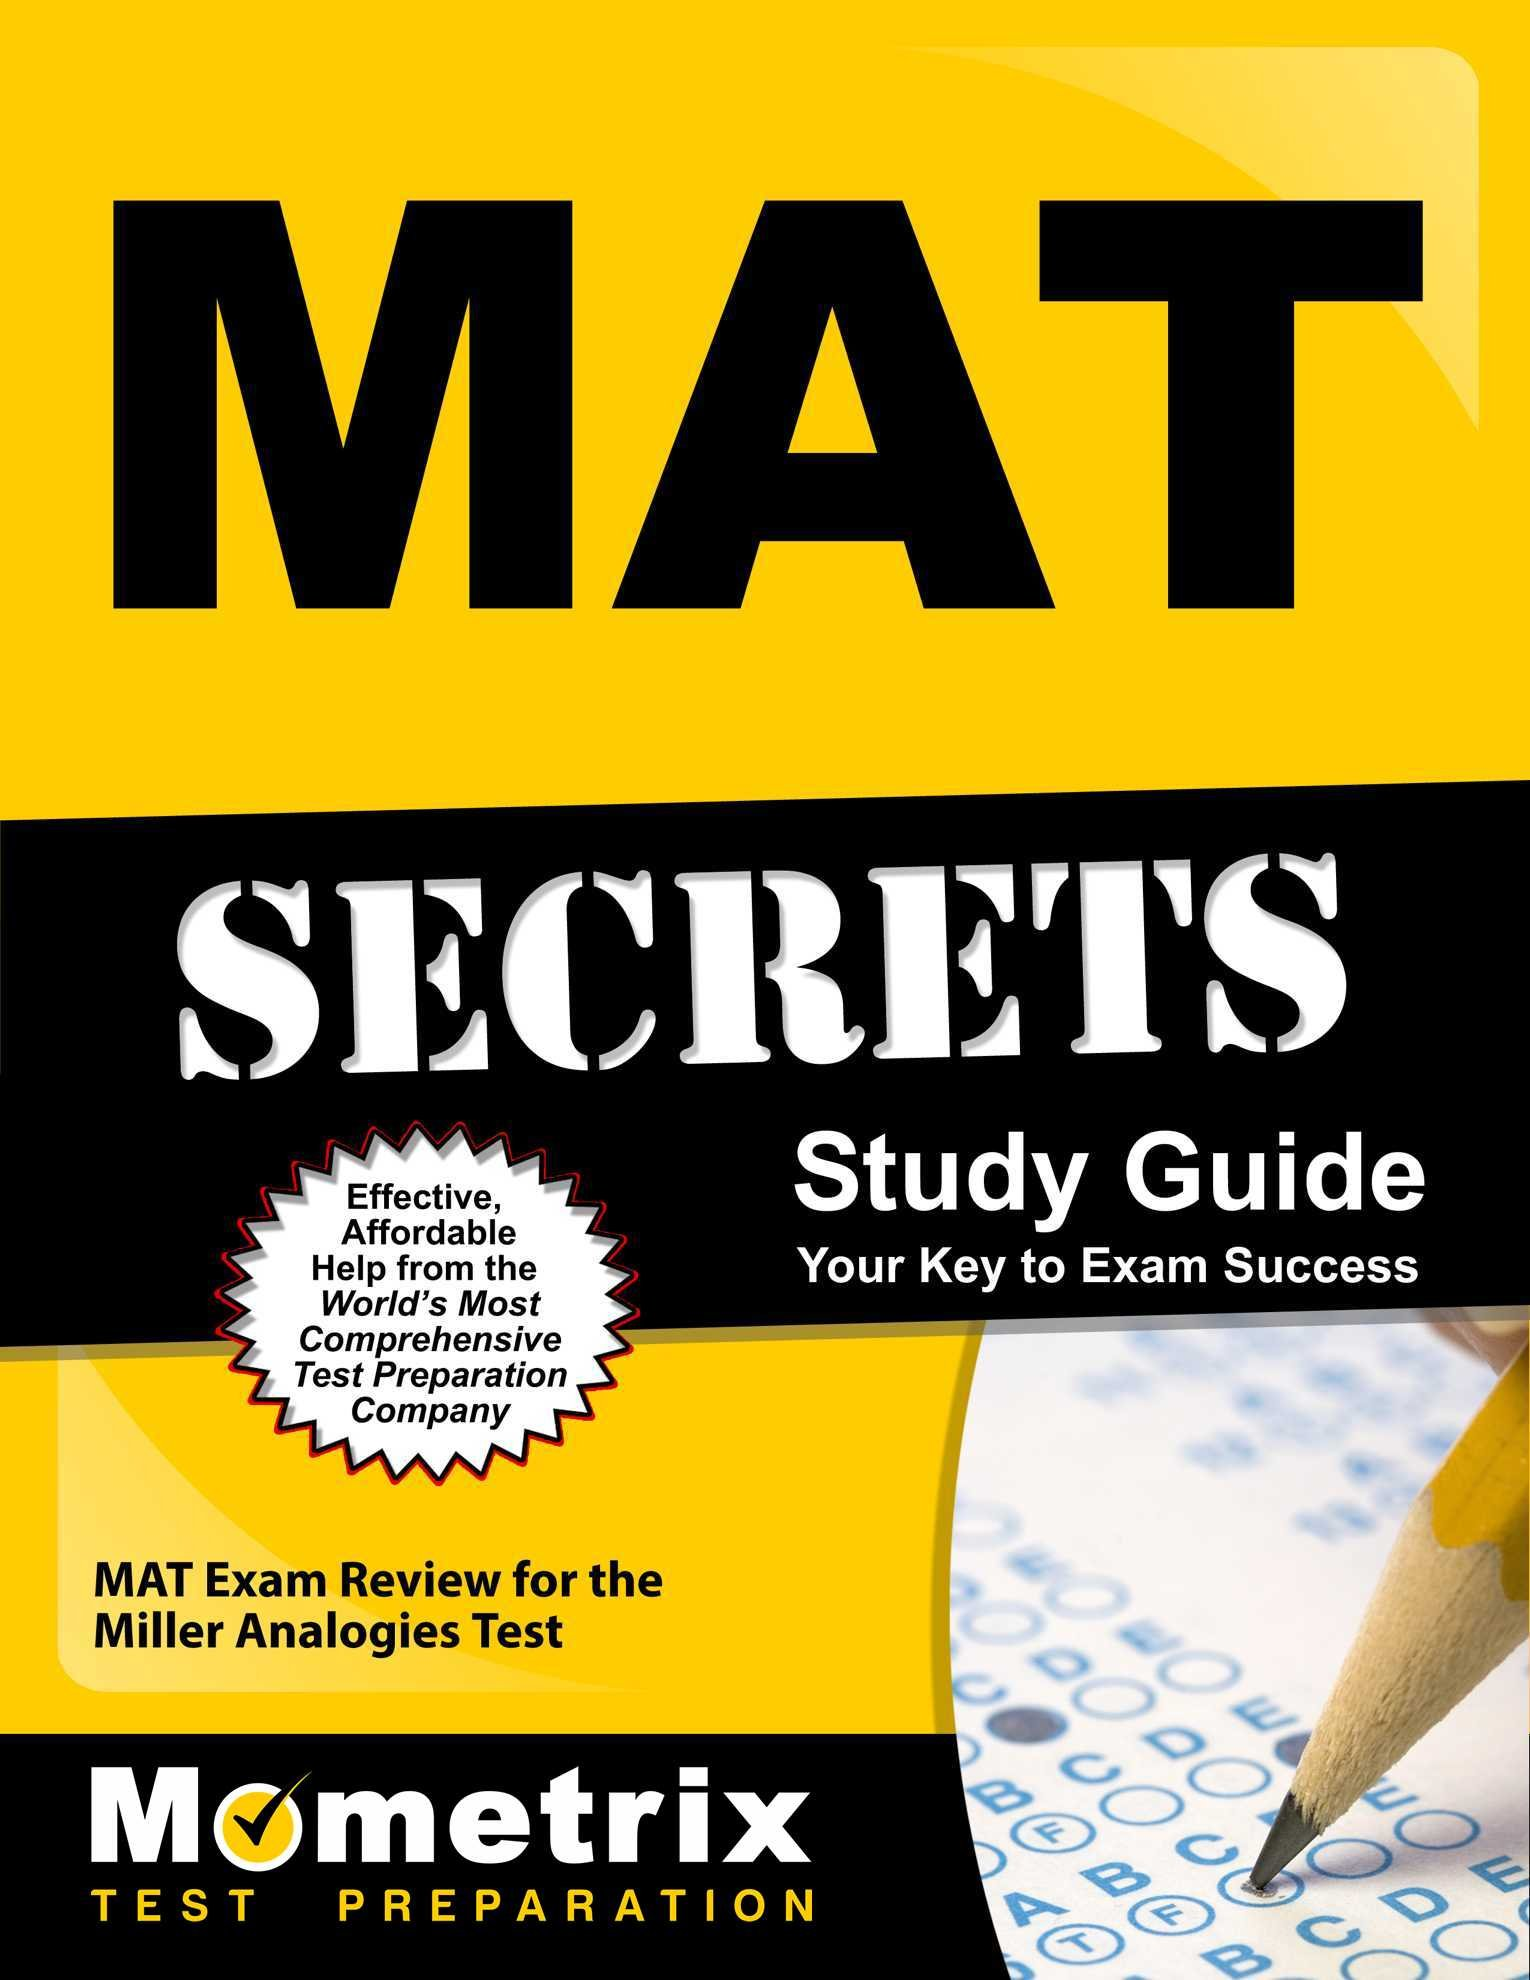 intermediate dp yourself advanced and grammar learn swedish upper mats to ylva study mat teach tutor course beginner olausson with workbook vocabulary guide